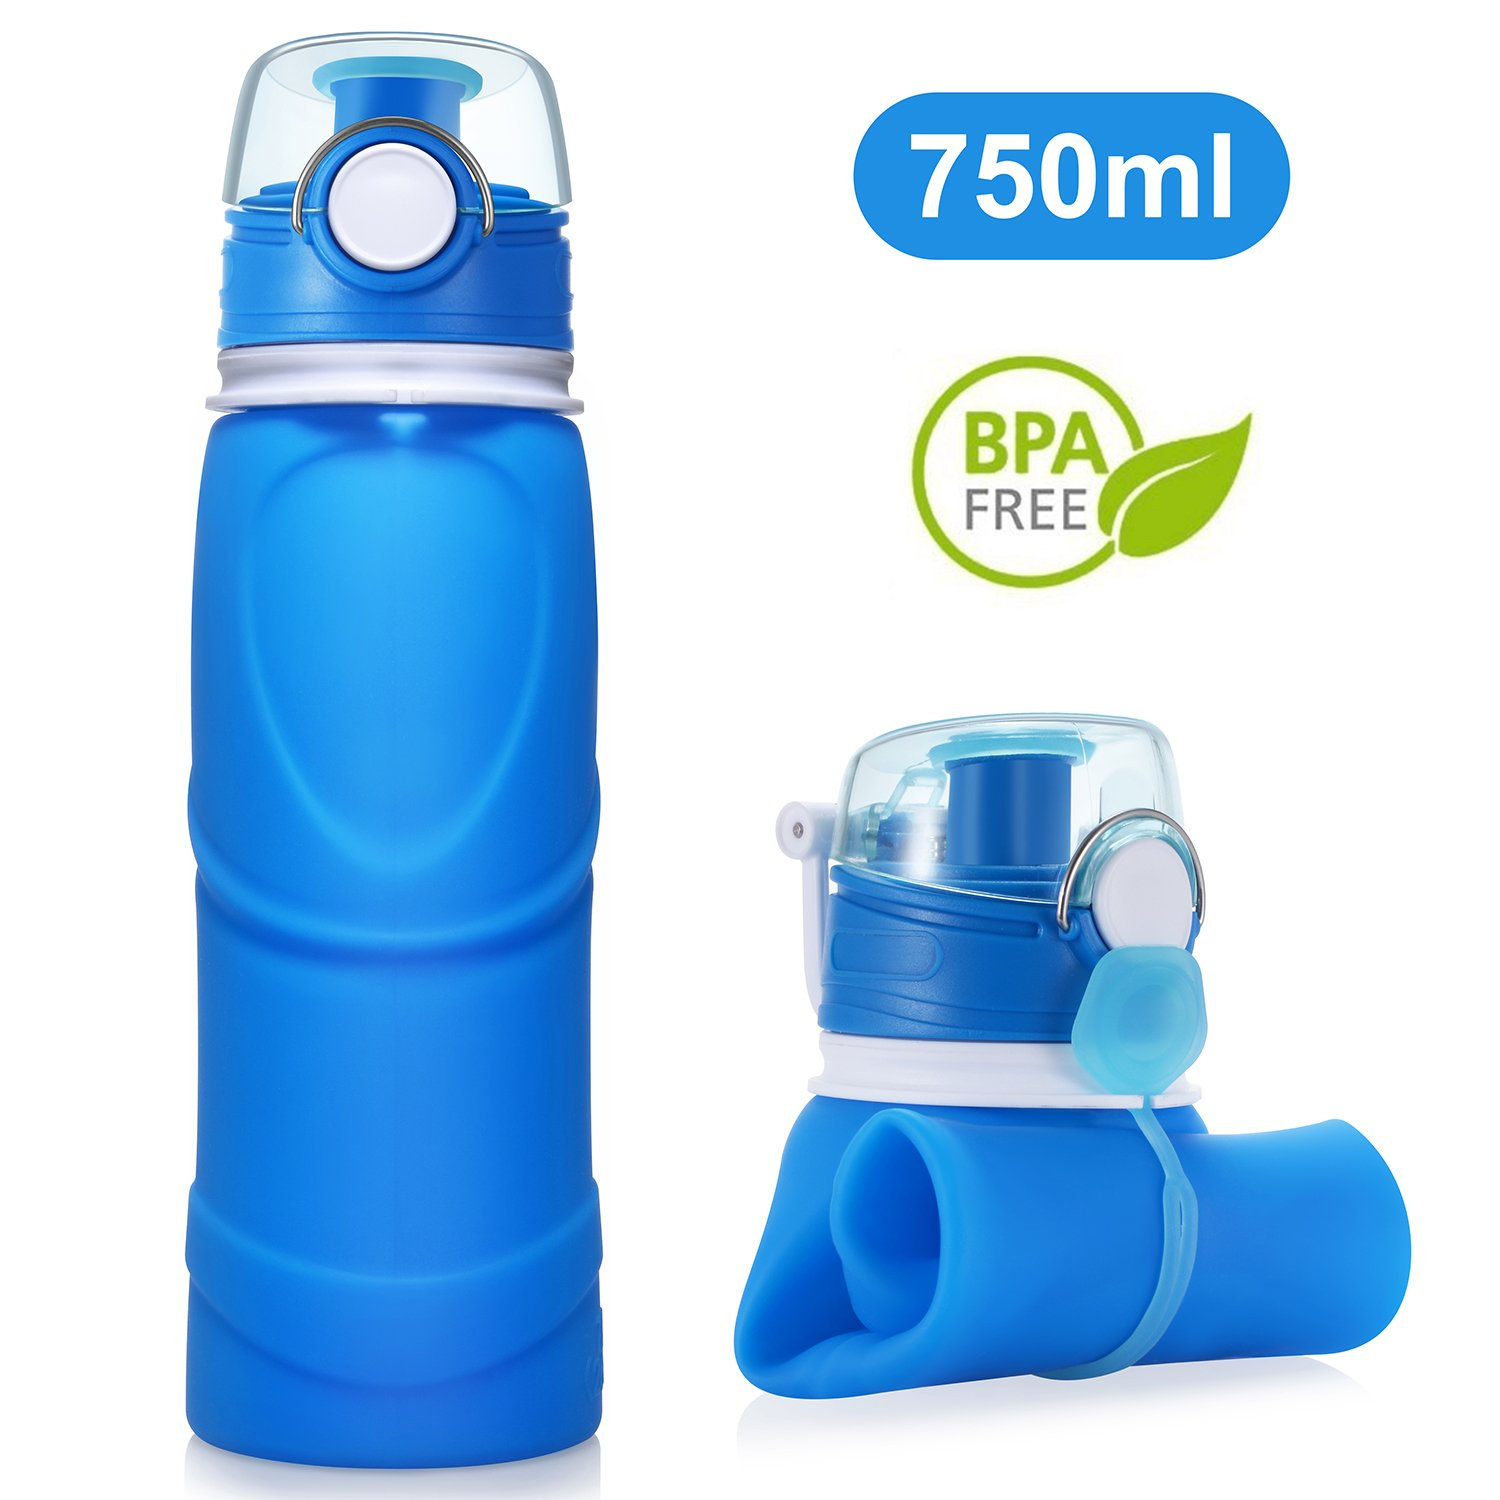 TURN RAISE Travel Collapsible Water Bottle 750ml Silicone Foldable Bottle with Leak Proof Valve by TURN RAISE